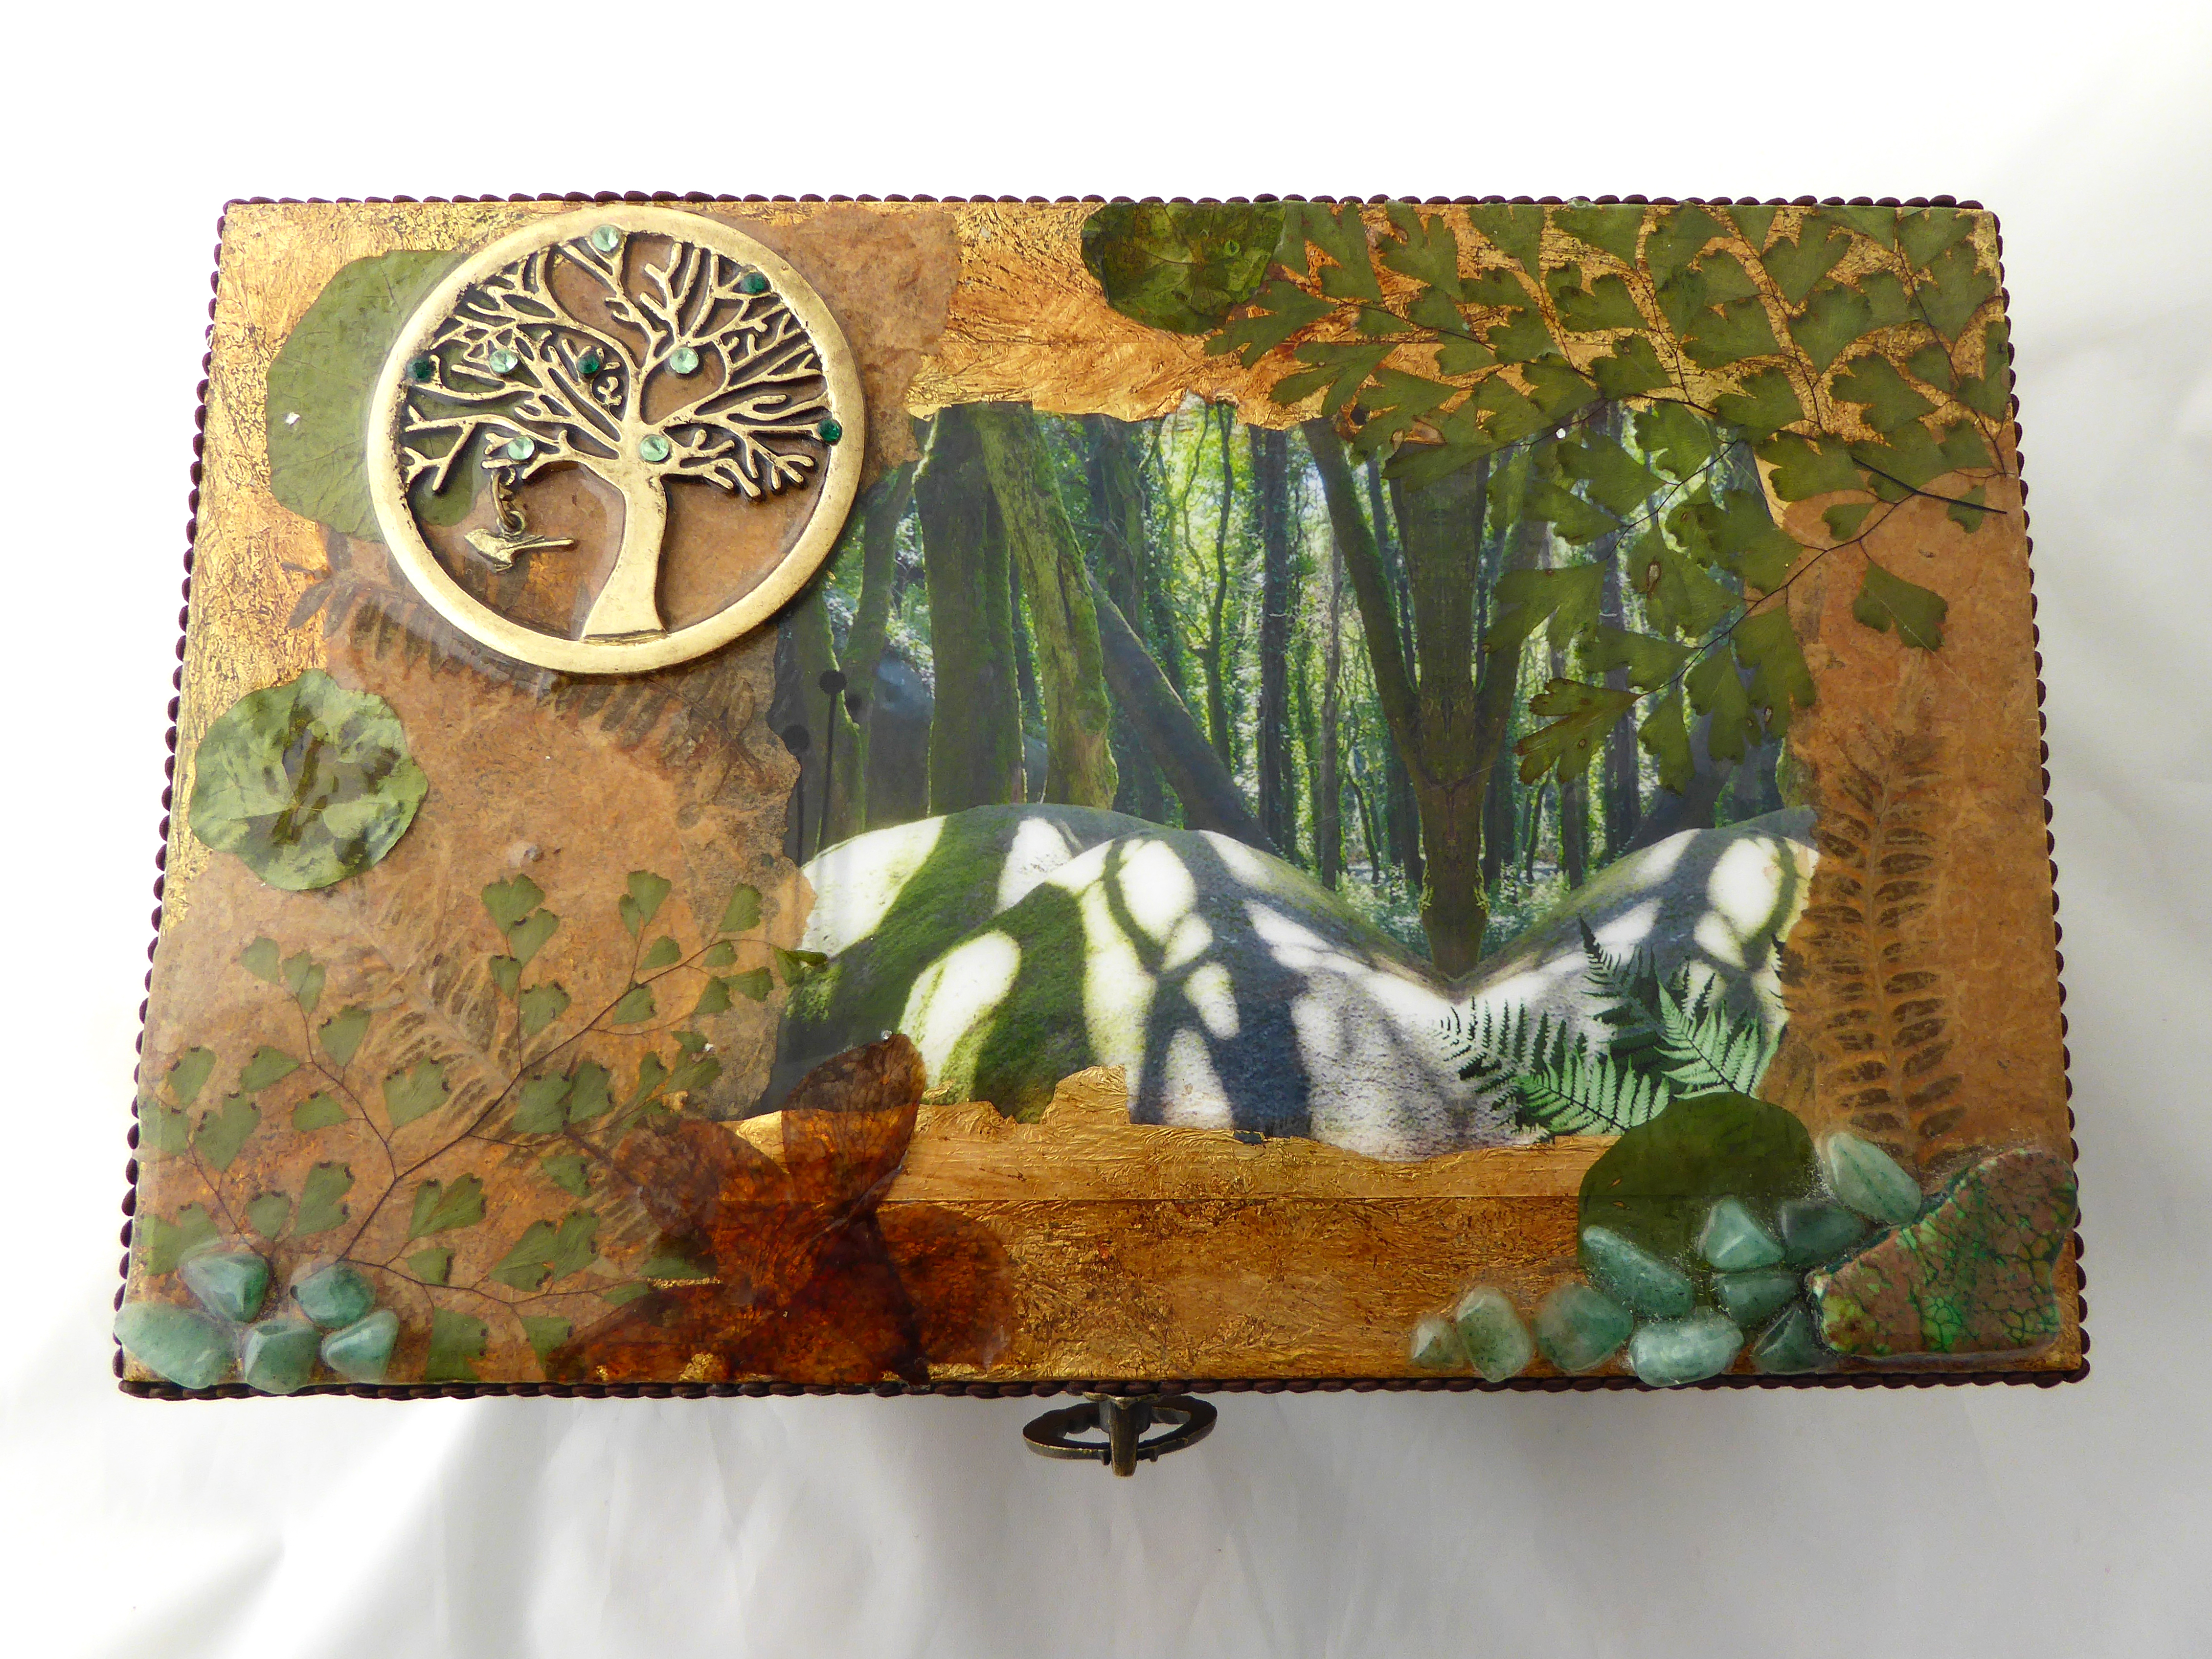 Tree of Life decorative box